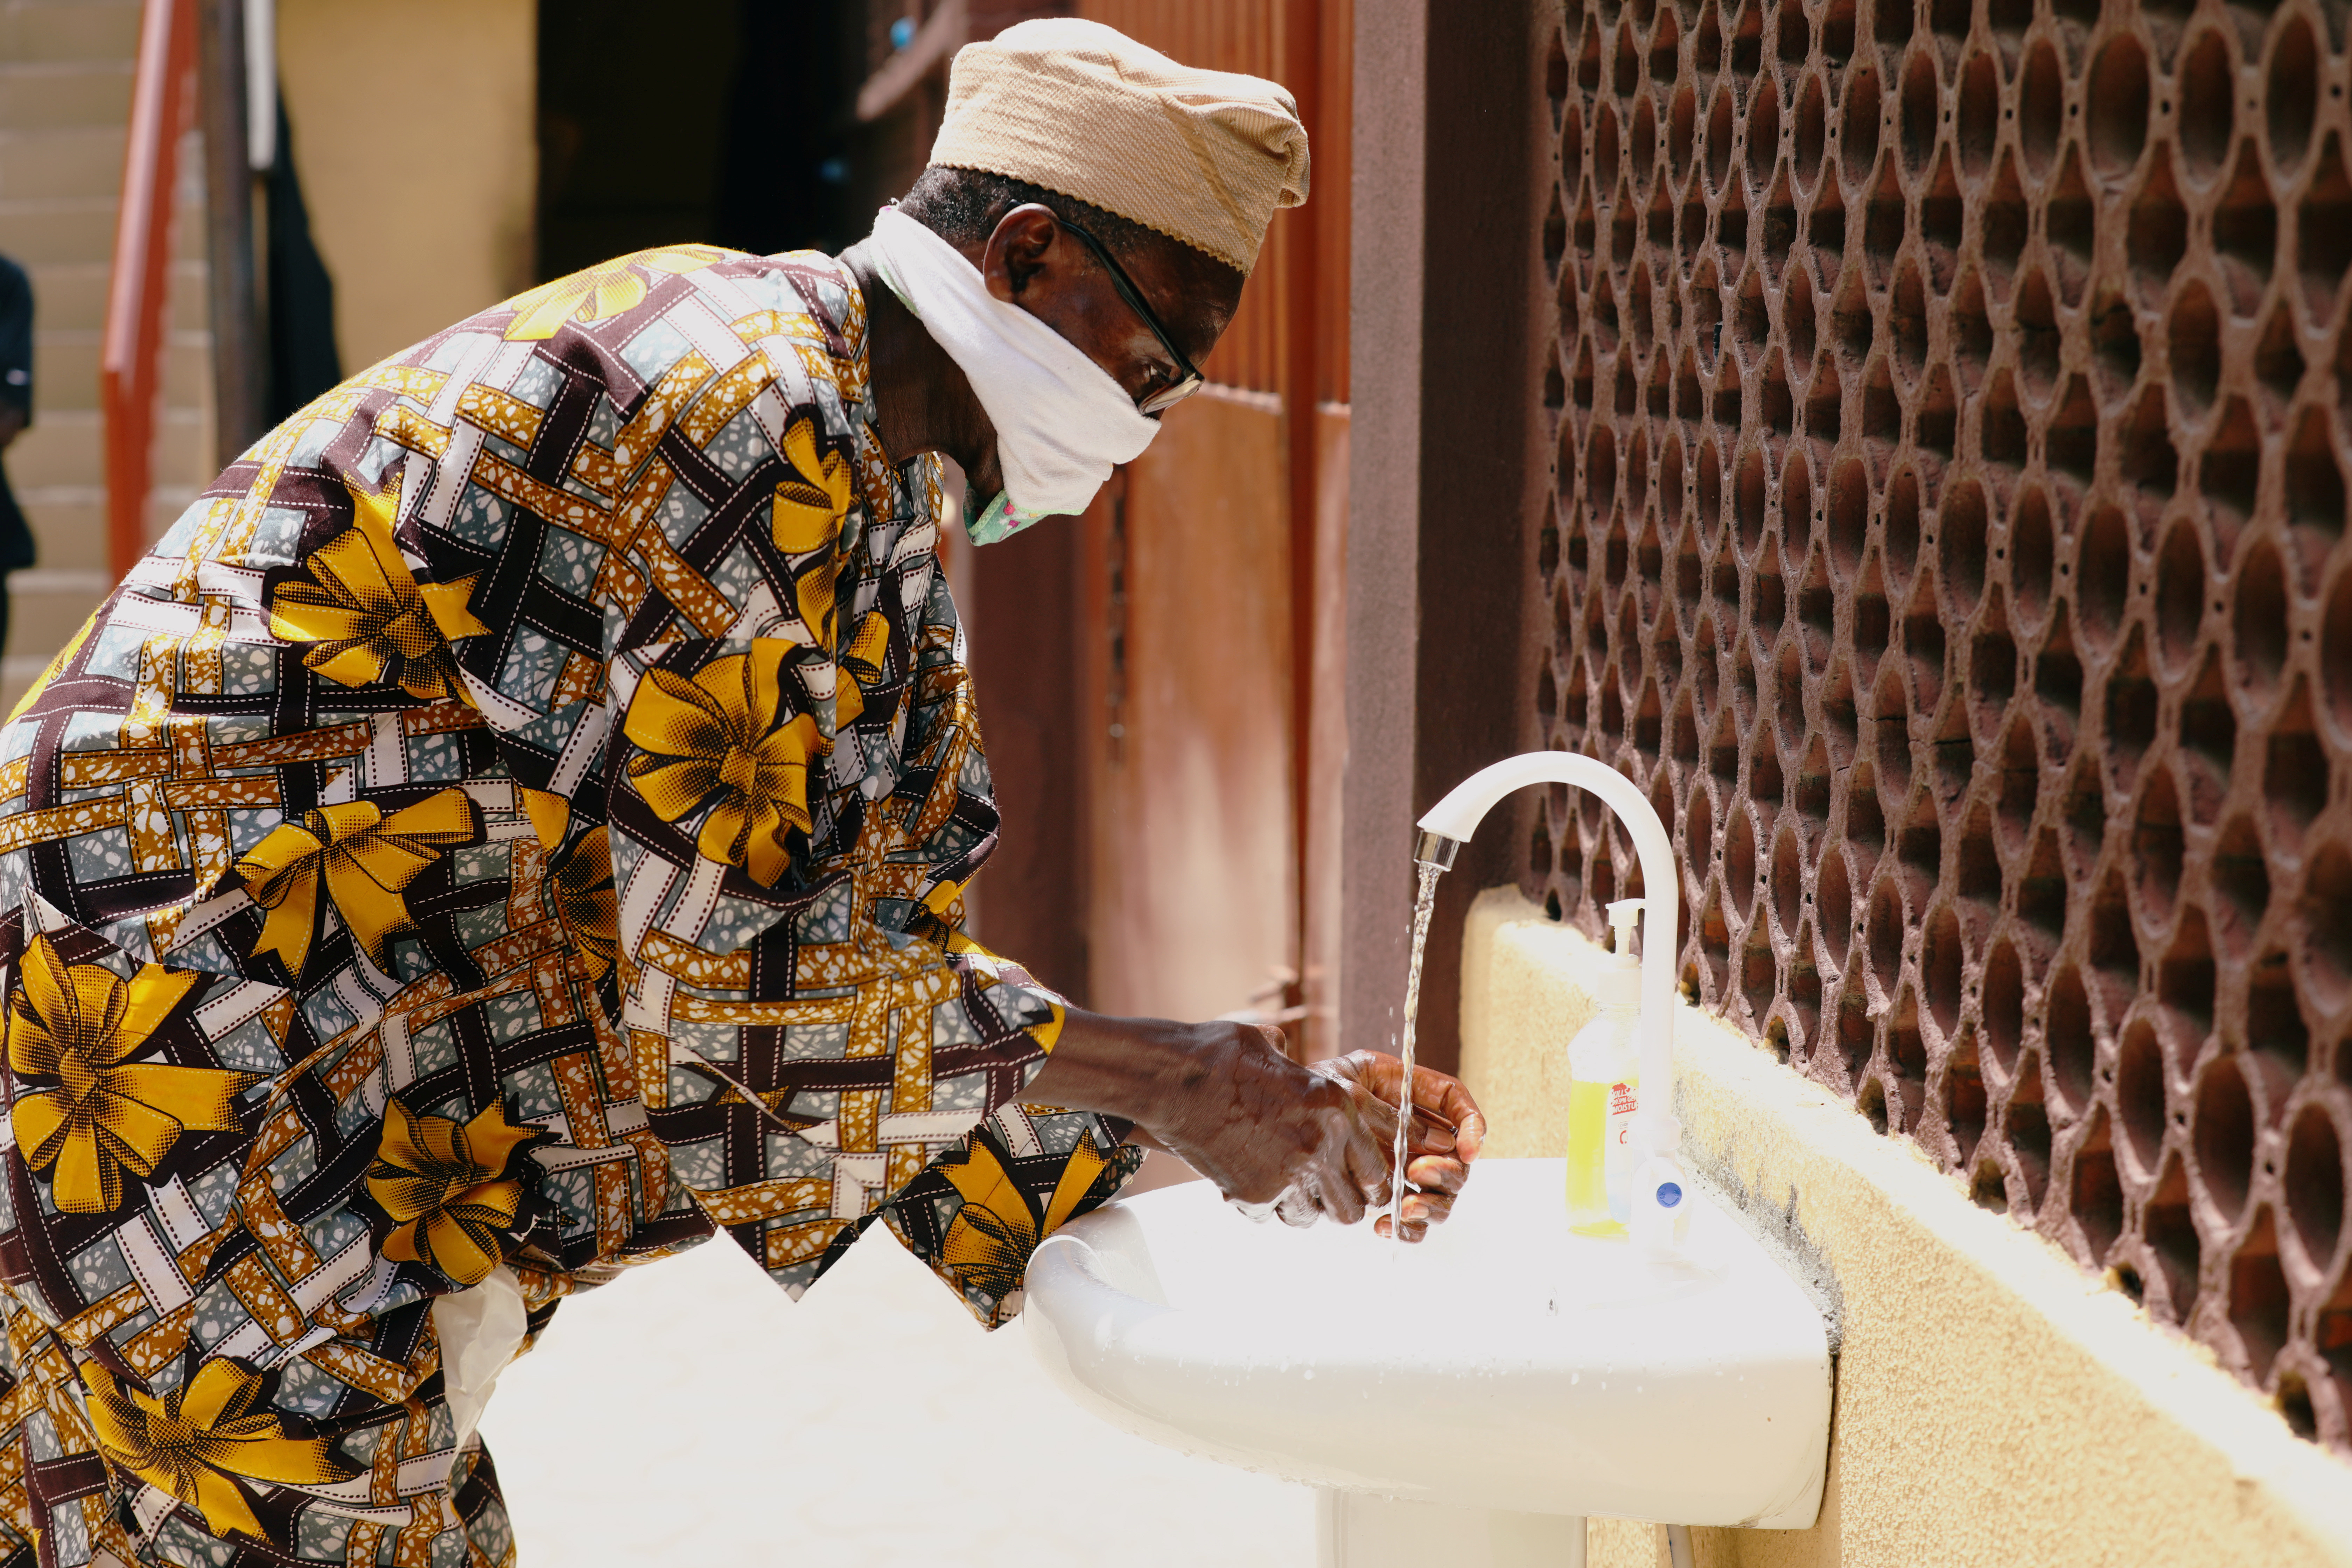 A man washes his hands at the Primary Healthcare Centre, amid the spread of the coronavirus disease (COVID-19) in Lagos, Nigeria May 7, 2020. Picture taken May 7, 2020. REUTERS/Temilade Adelaja - RC2XSH9ZSFNR